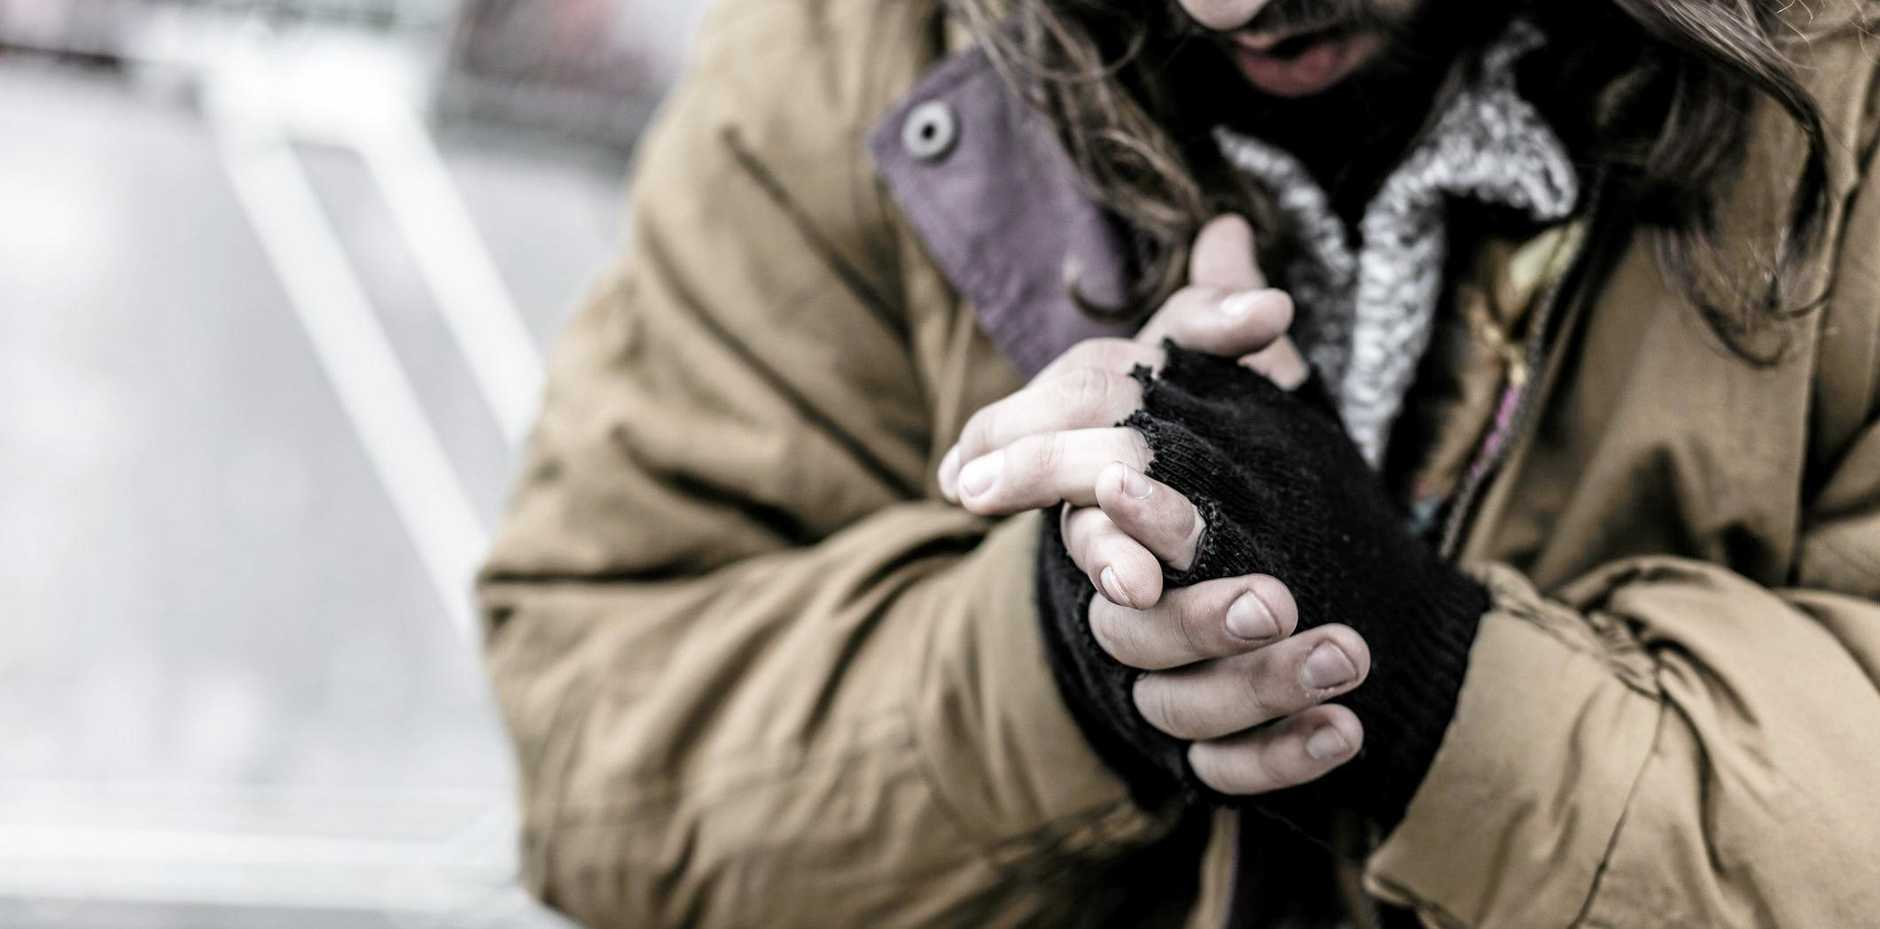 Homelessness is on the rise in Toowoomba and services are struggling to keep up with demand.